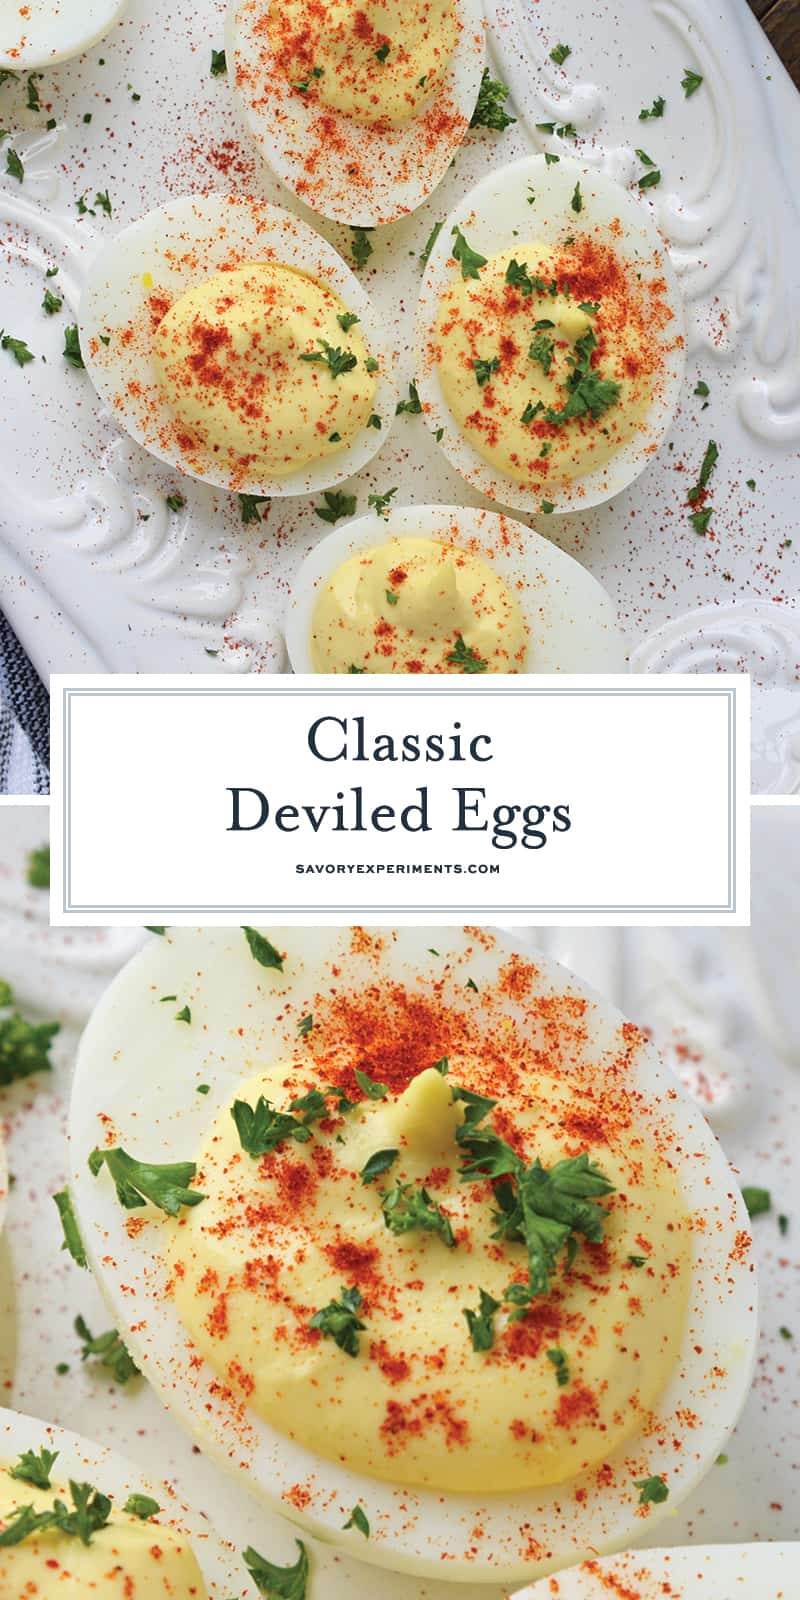 Classic Deviled Eggs How To Make Southern Deviled Eggs